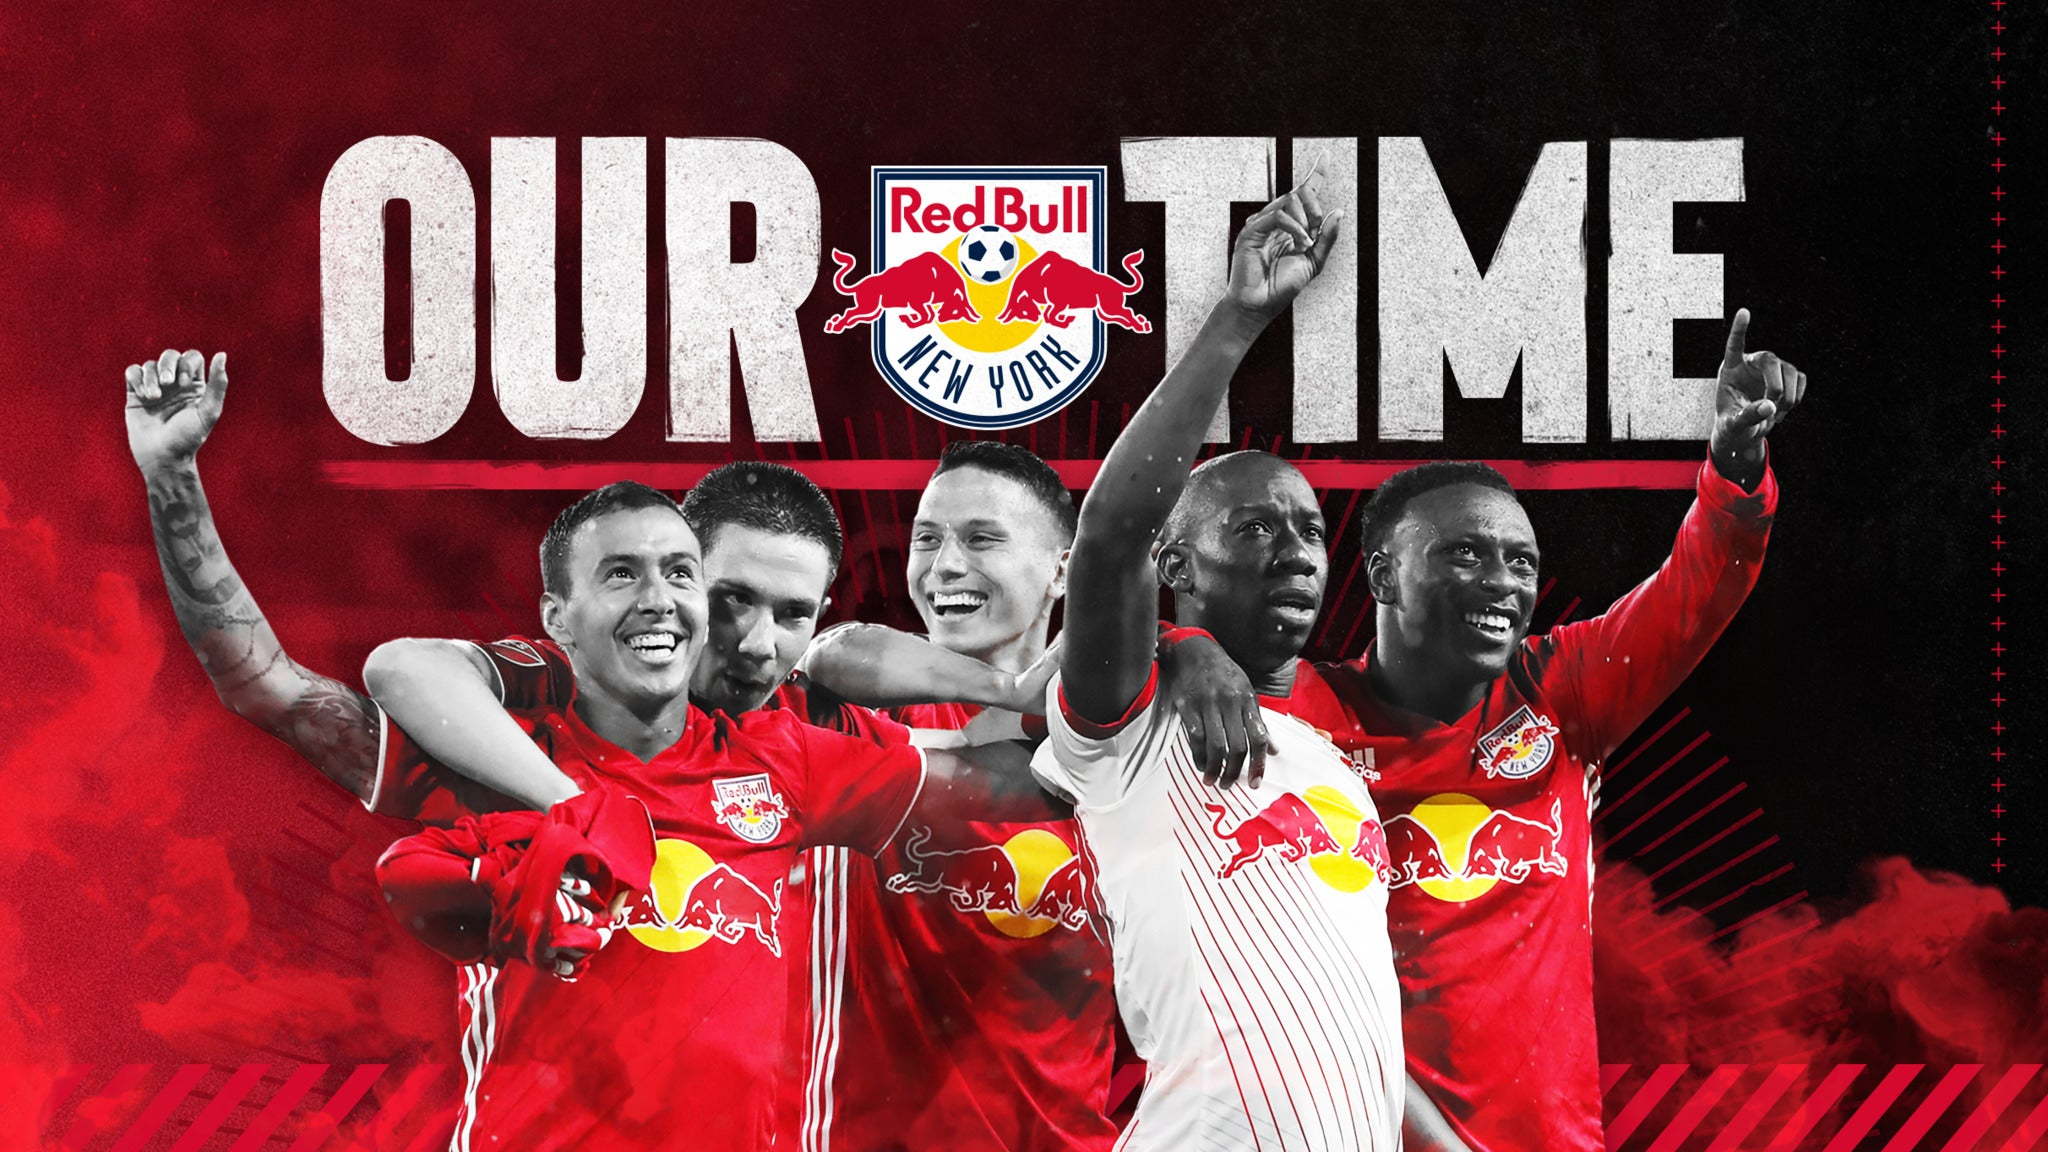 New York Red Bulls Conference Championship at Red Bull Arena